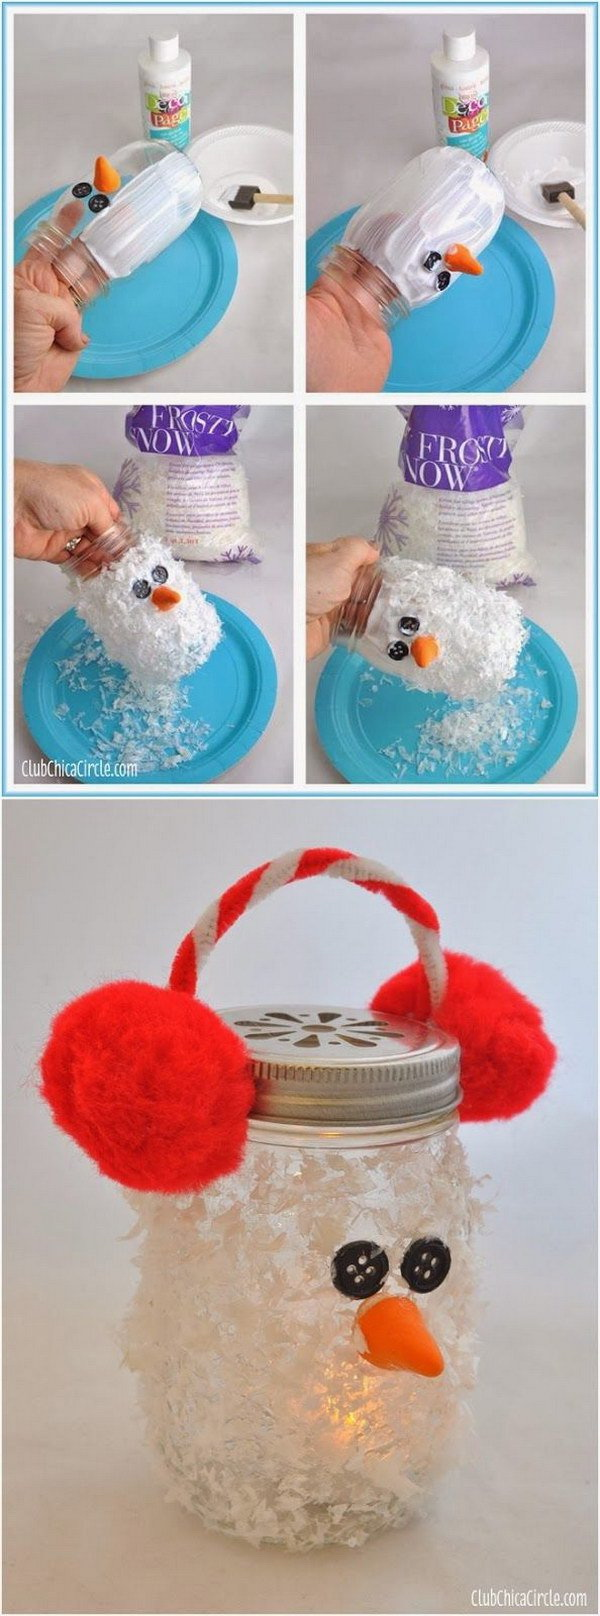 DIY Snowman Mason Jar Luminary: Super cute and adorable and also easy to make!